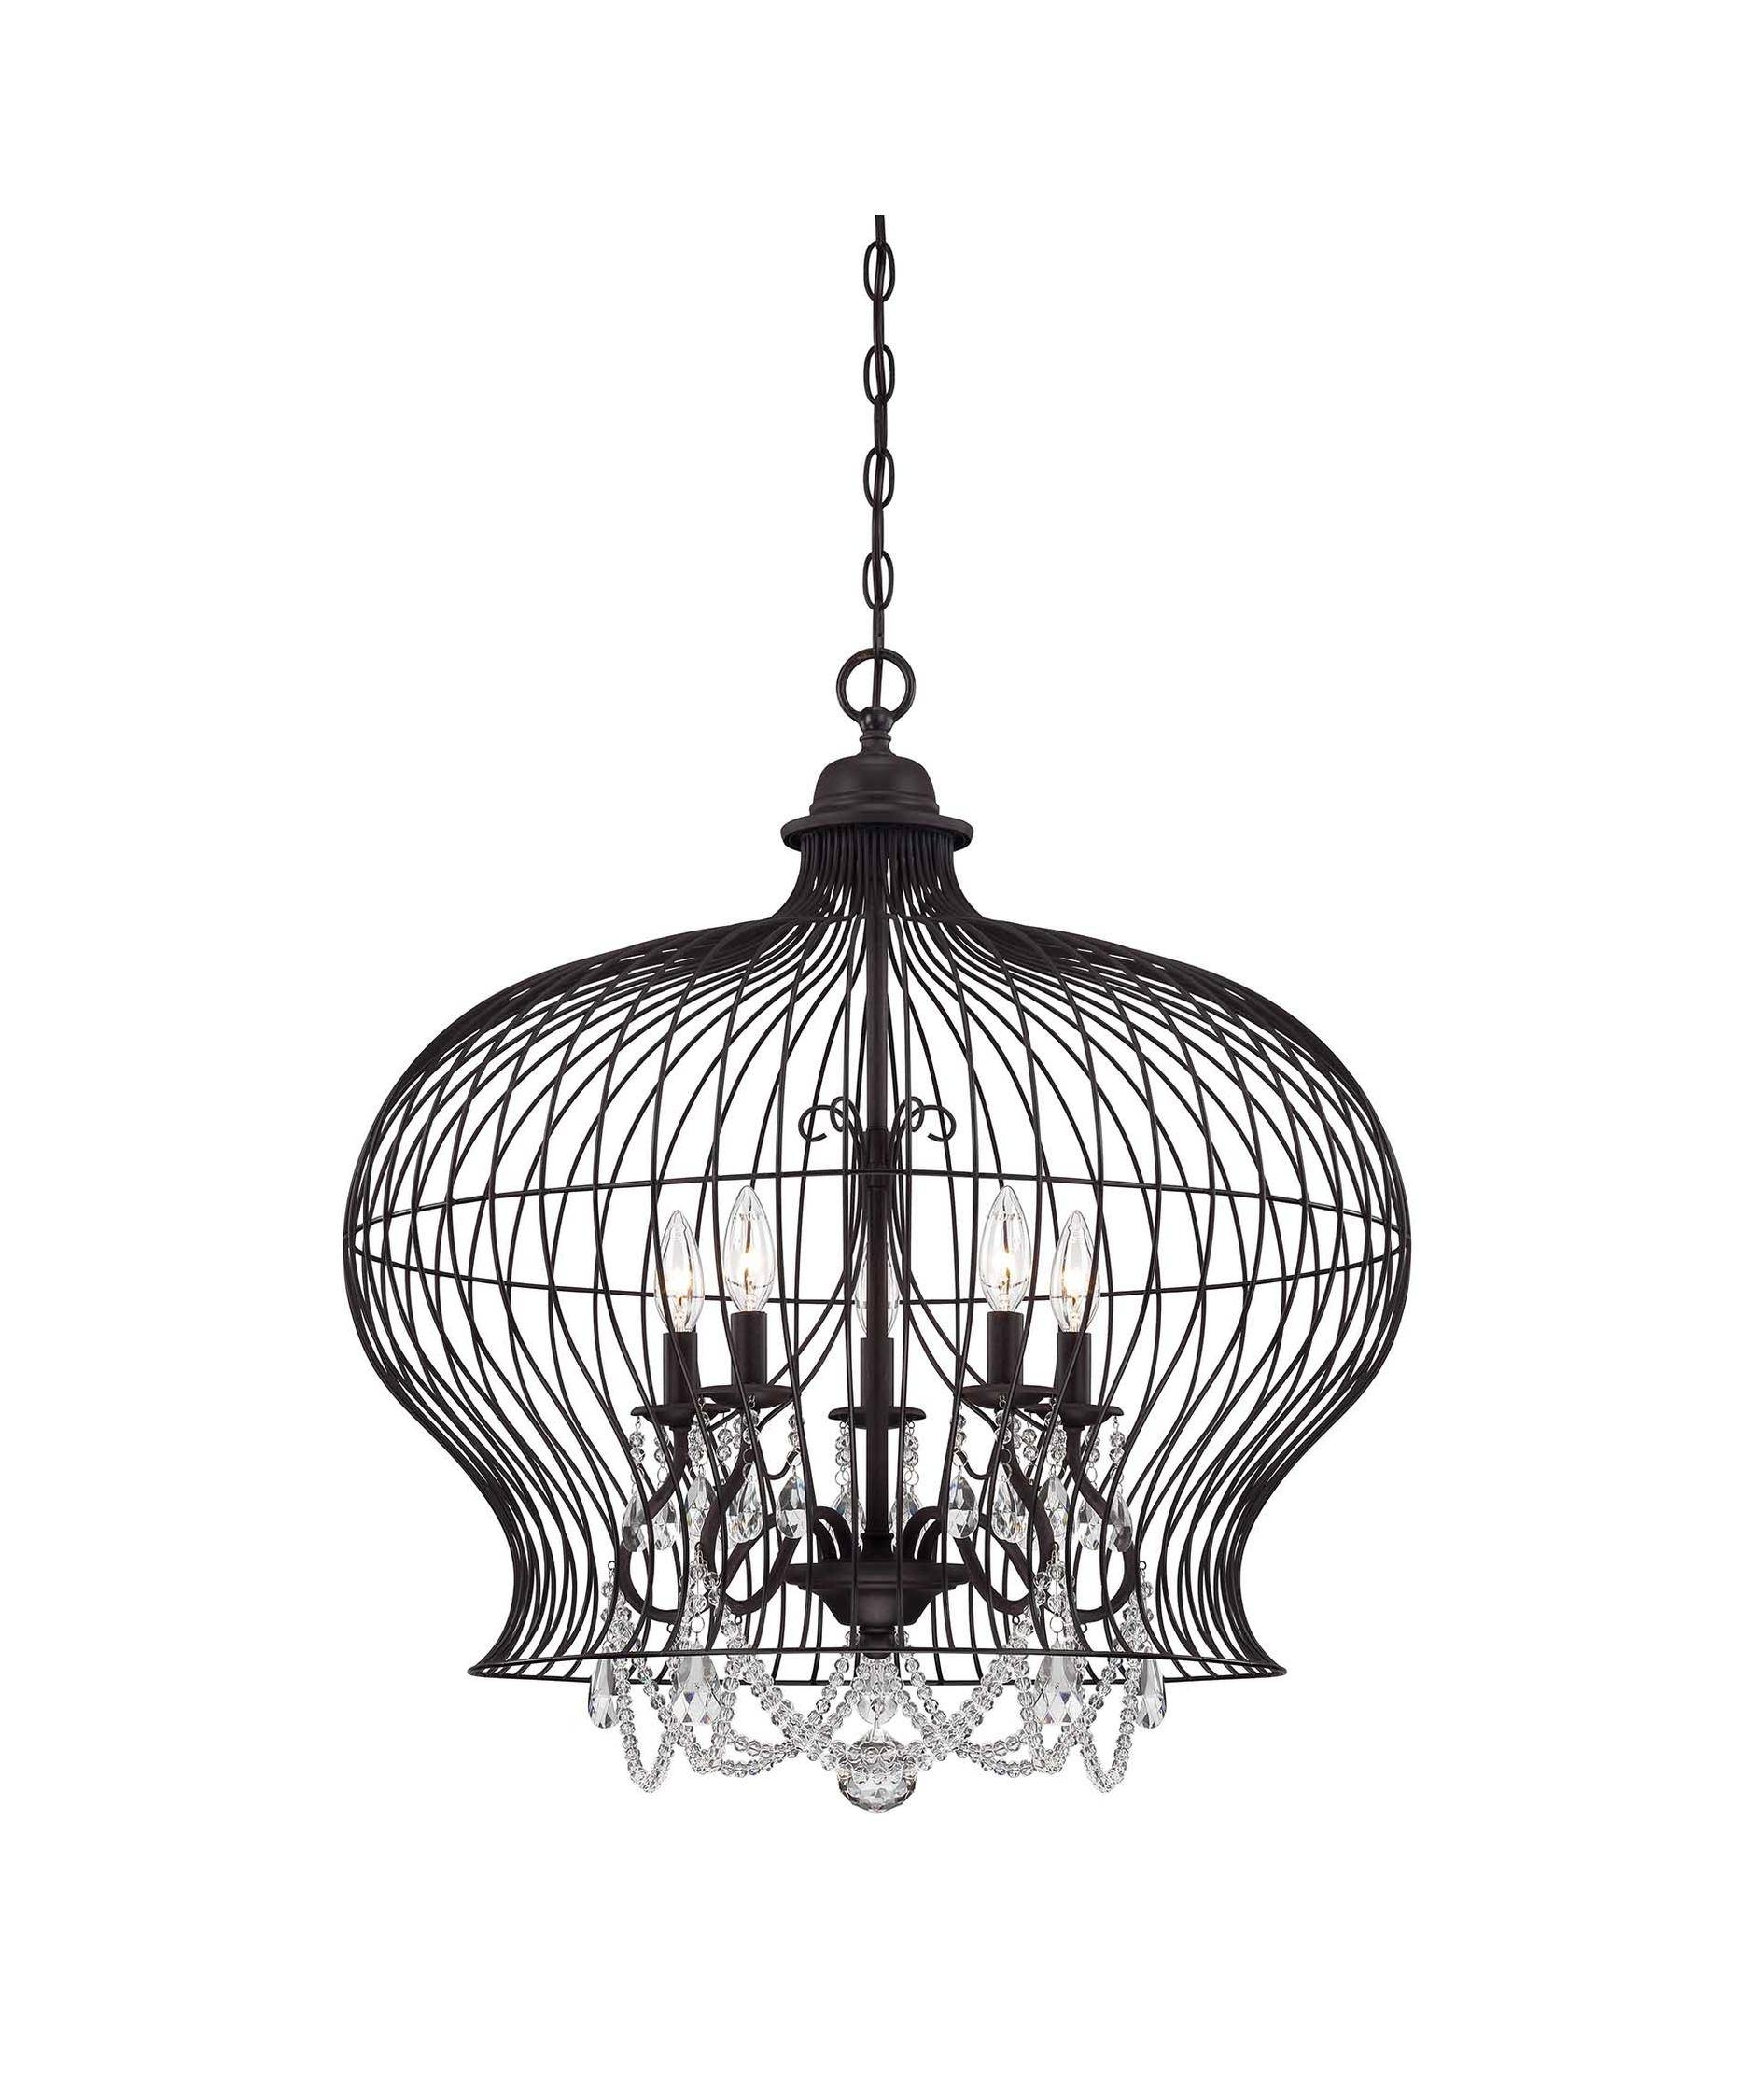 Savoy House 7 6100 6 Birdcage 30 Inch Wide 6 Light Large Pendant Within Birdcage Pendant Lights (View 9 of 15)